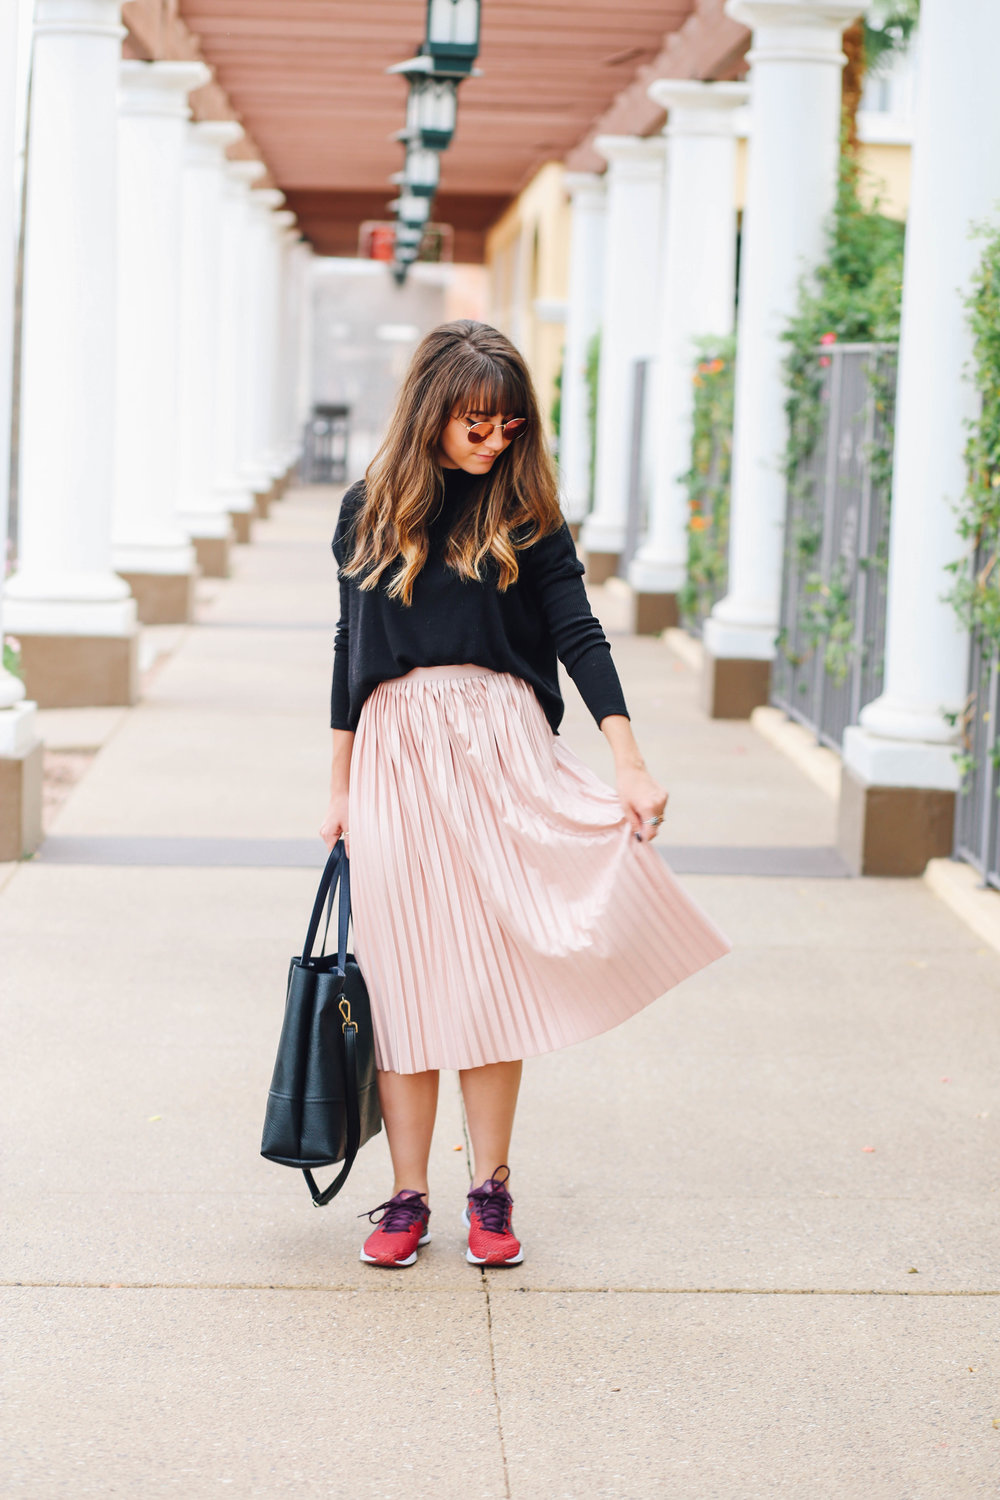 BrielleRouge TopShop Skirt6.jpg